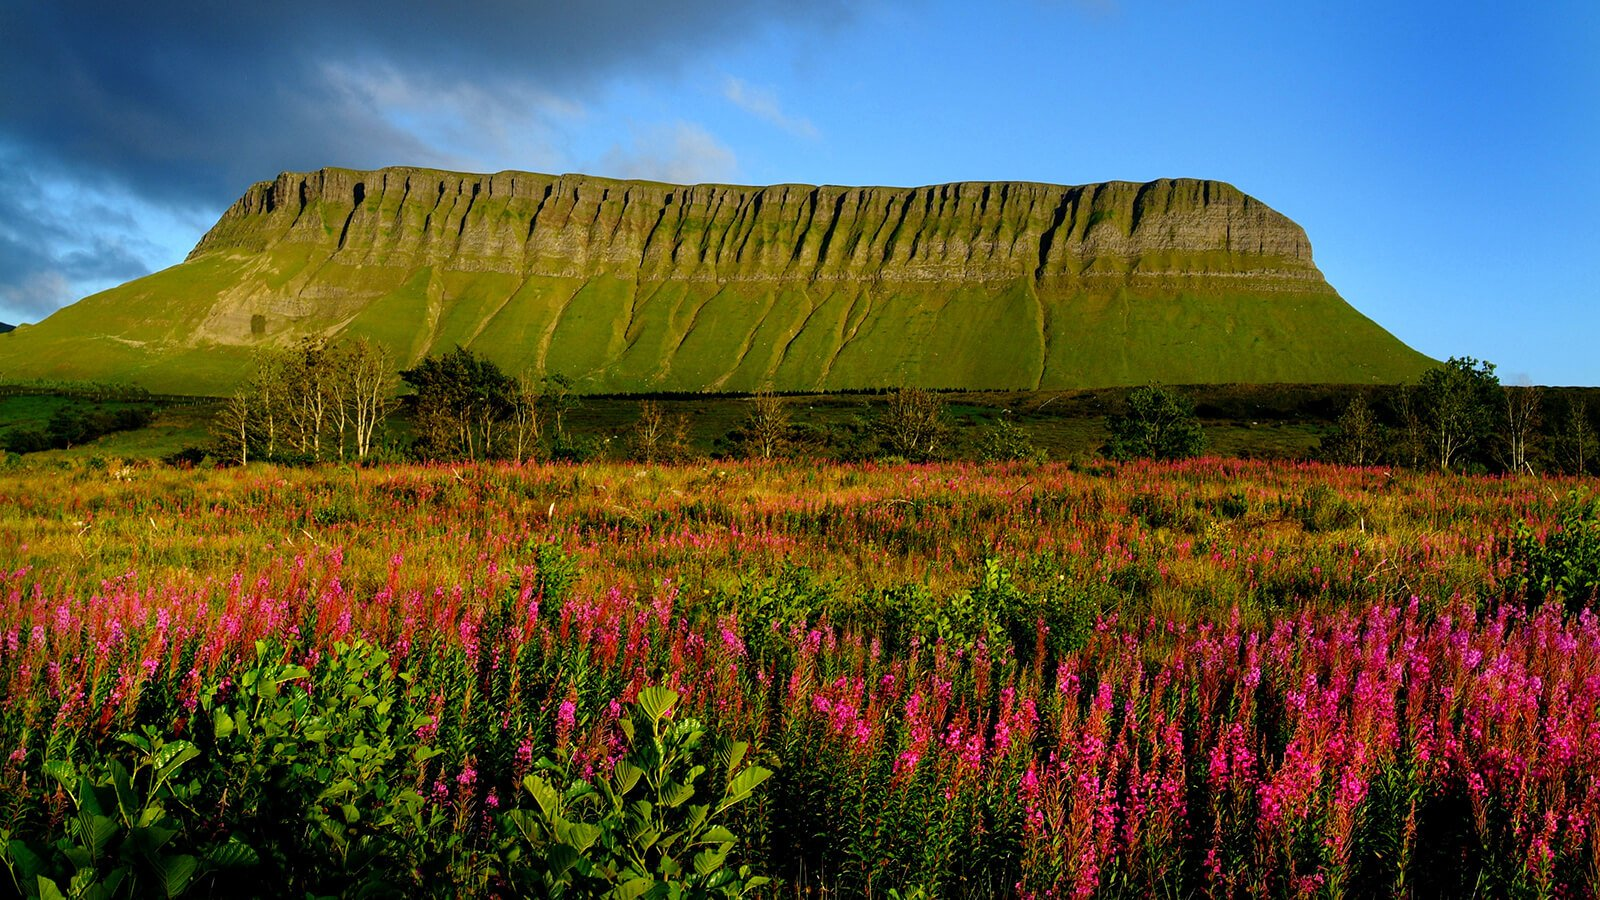 Ben Bulben Mountain with wildflowers in the foreground in Sligo, Ireland